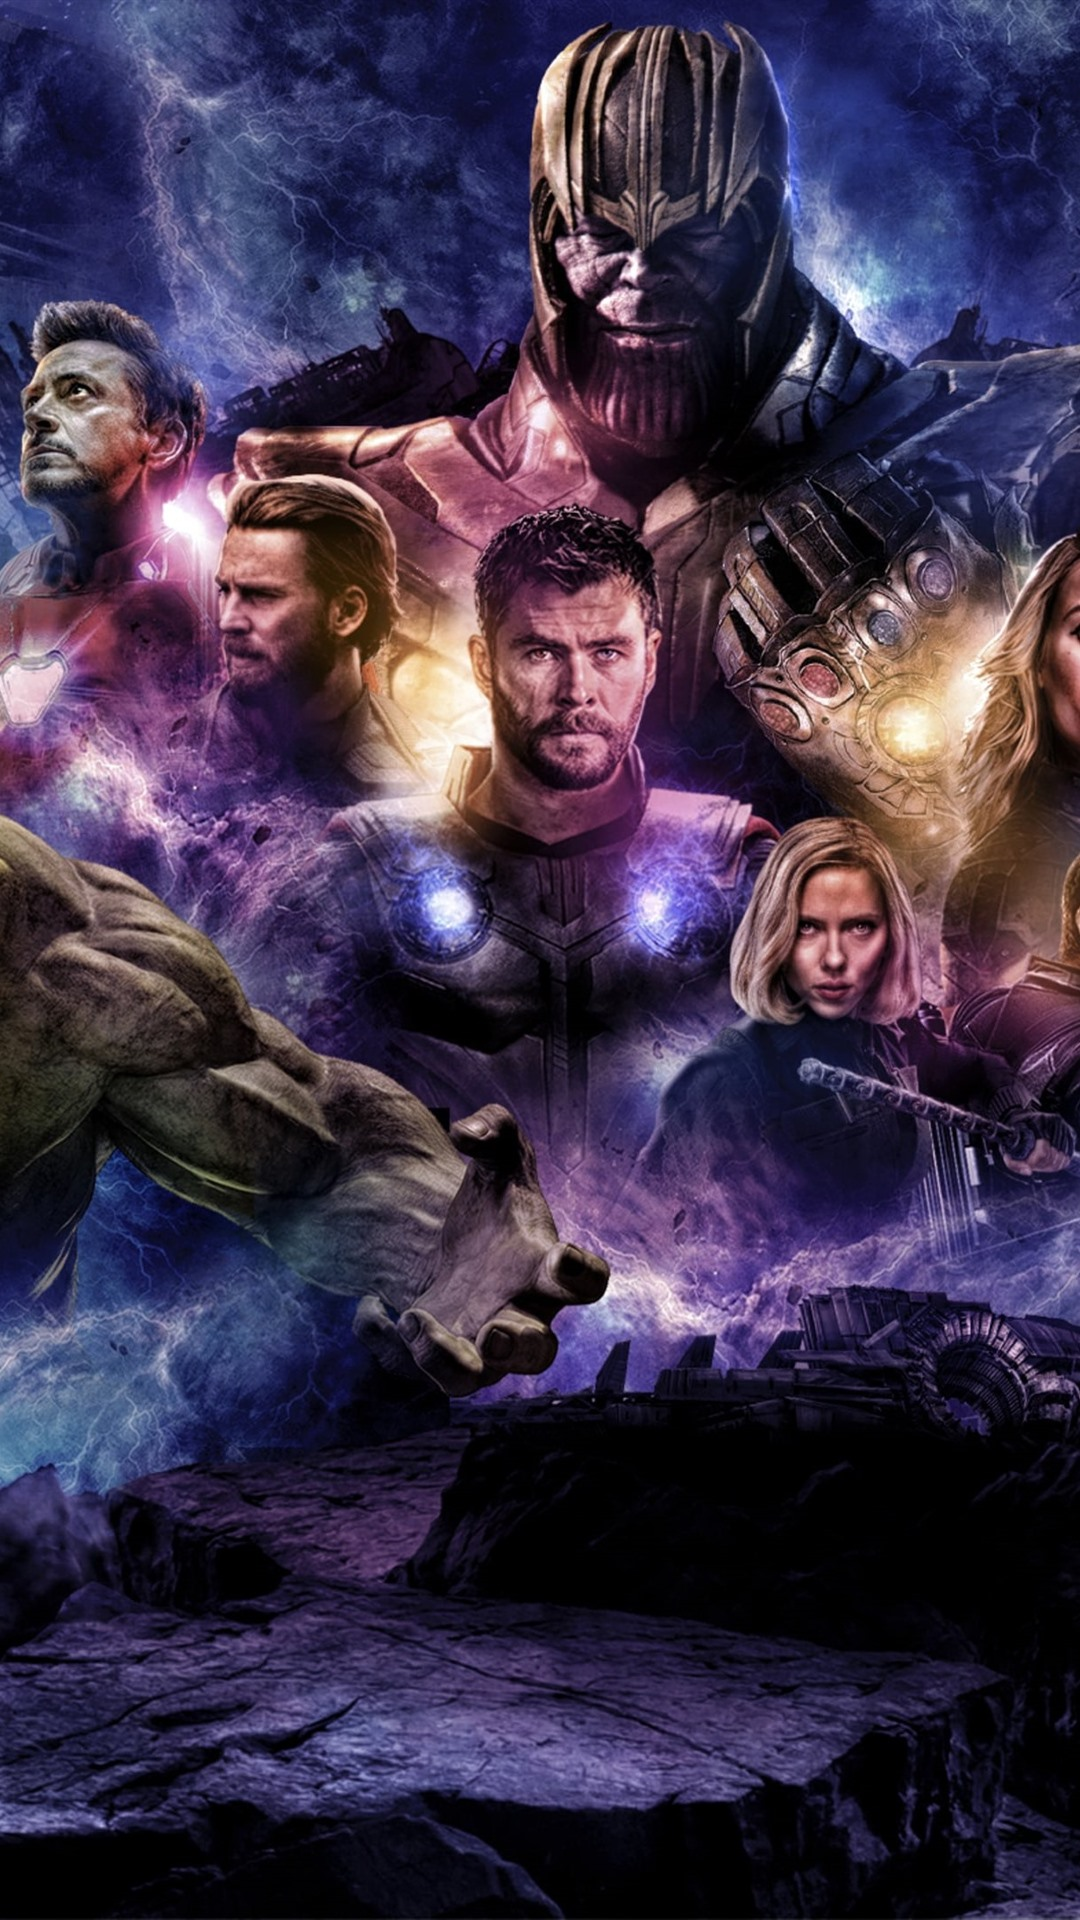 Avengers Endgame Dc Comics Movie 2019 1080x1920 Iphone 8766s